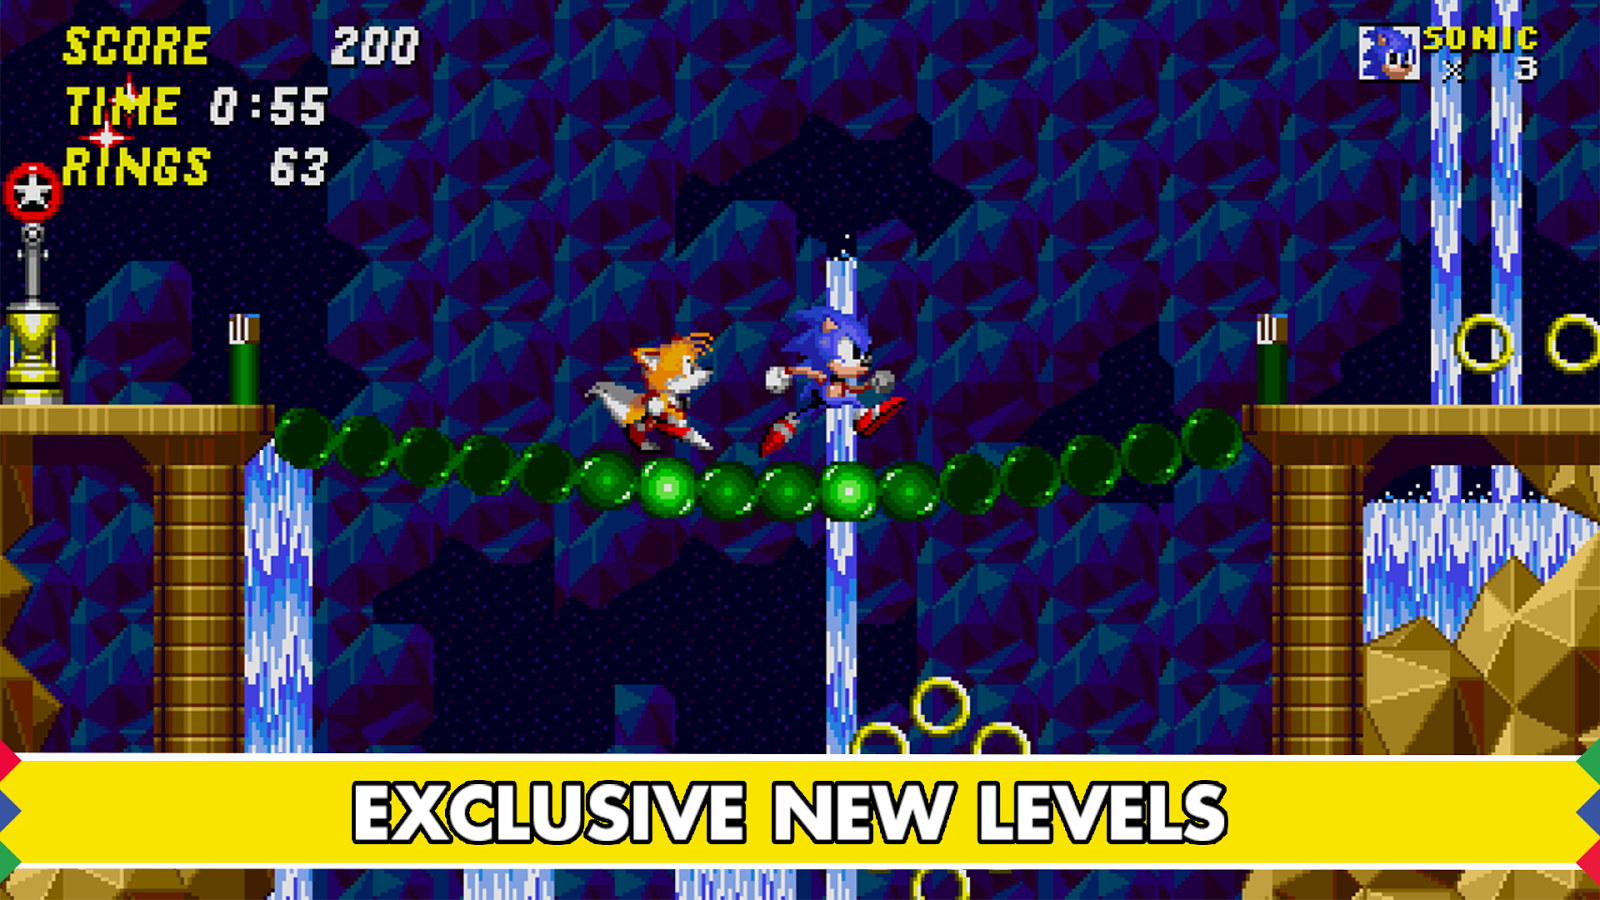 Sonic The Hedgehog 2 3 1 5 APK Download - Android Arcade Games